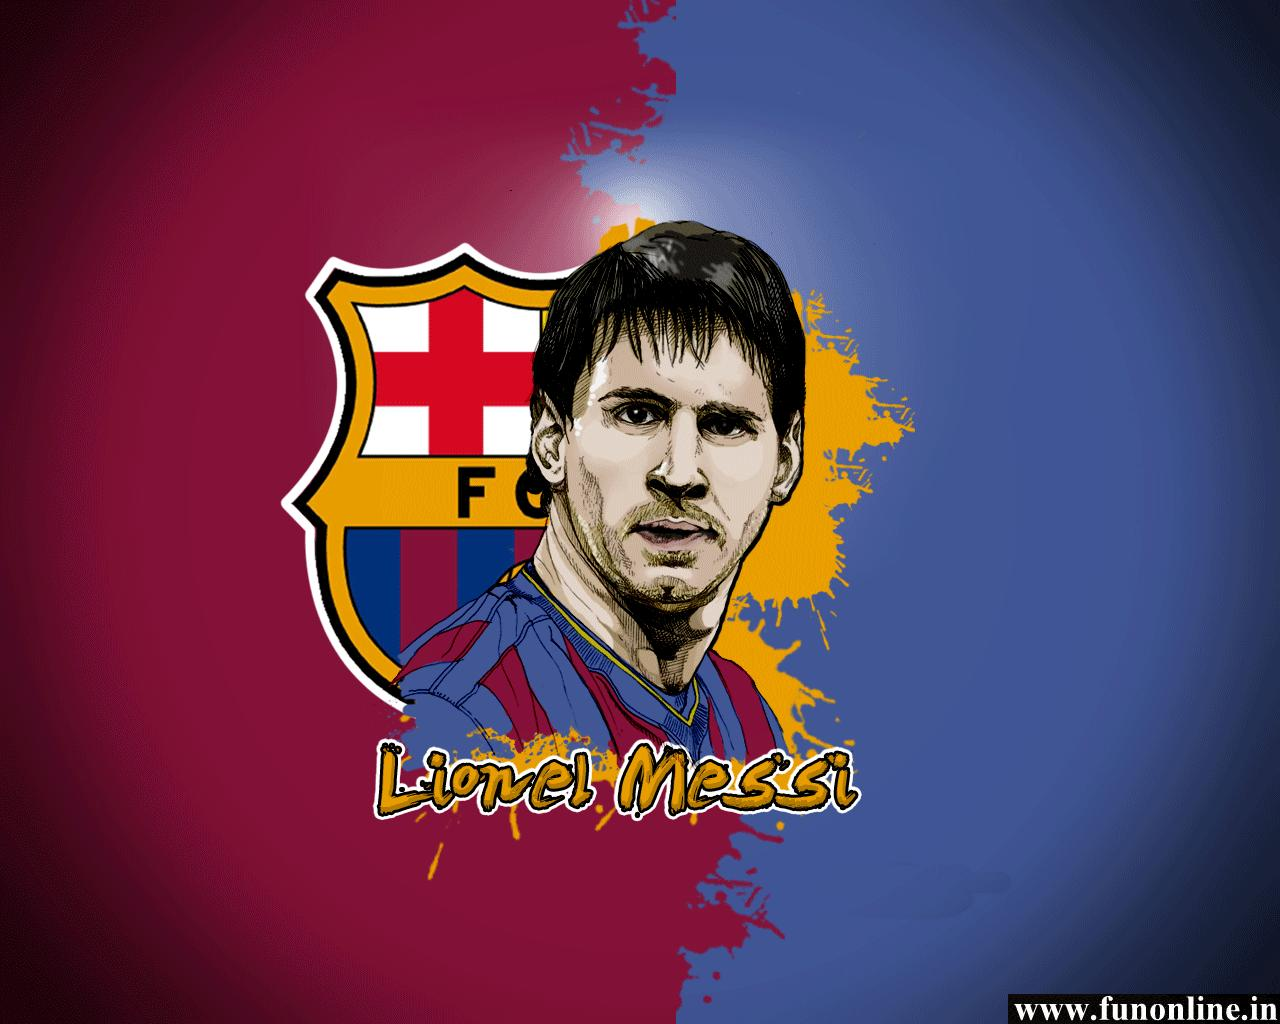 Lionel Messi × Backgrounds Full HD  PixelsTalk Lionel Messi Full HD Wallpaper Images  The Pics World 1280x1024